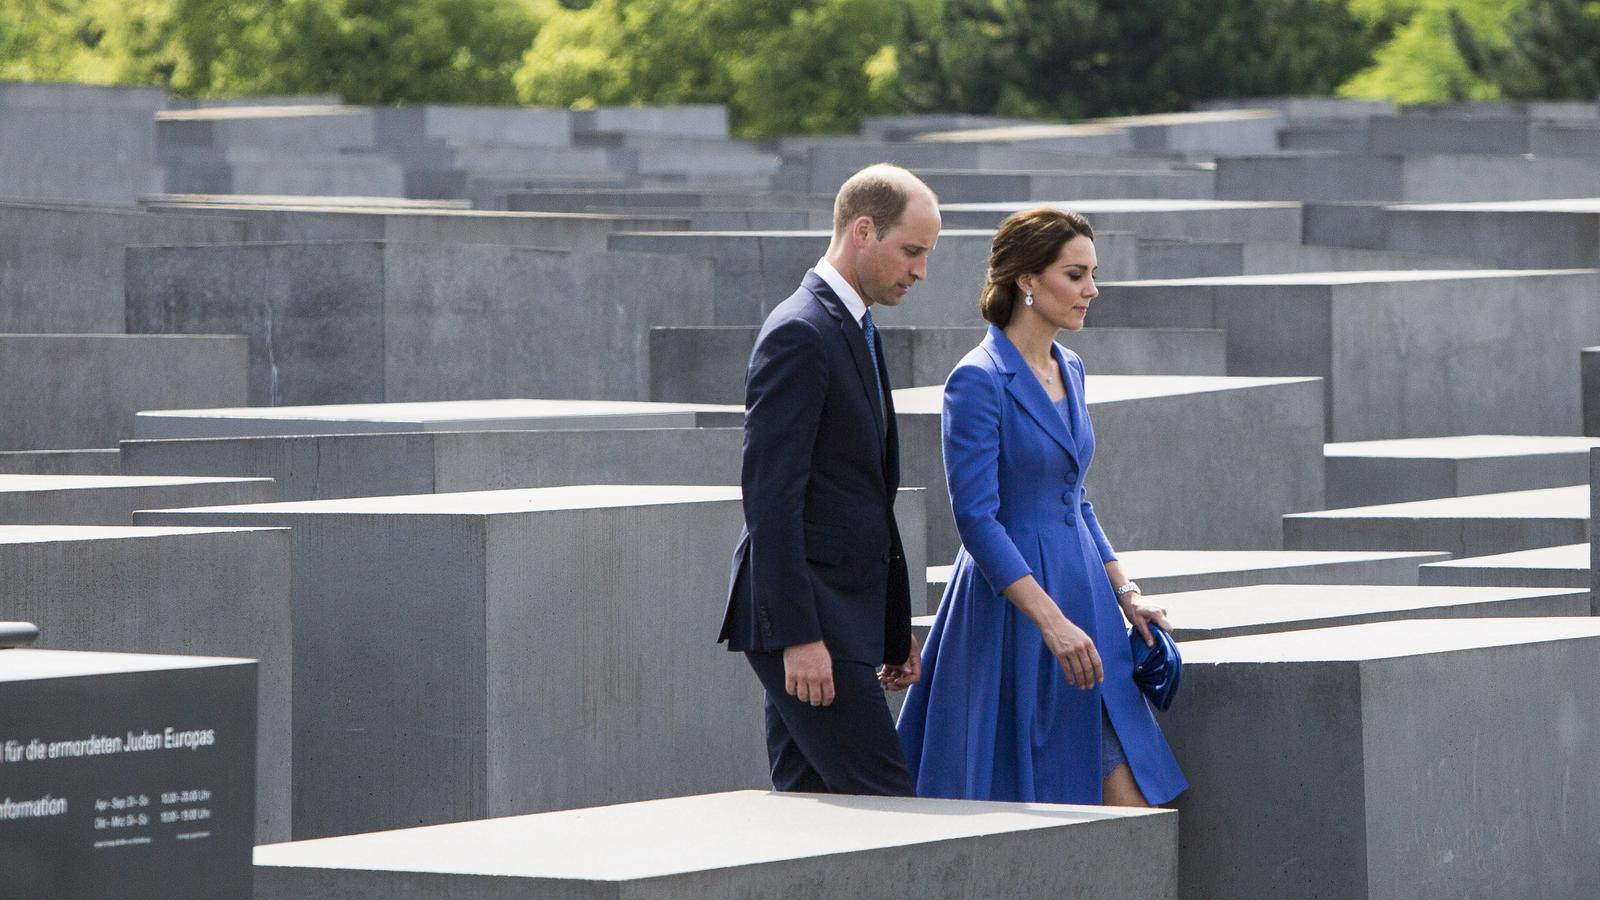 Prince William And Catherine Duchess of Cambridge on their royal tour of Germany. The royal couple visited the Holocaust Memorial in Berlin.